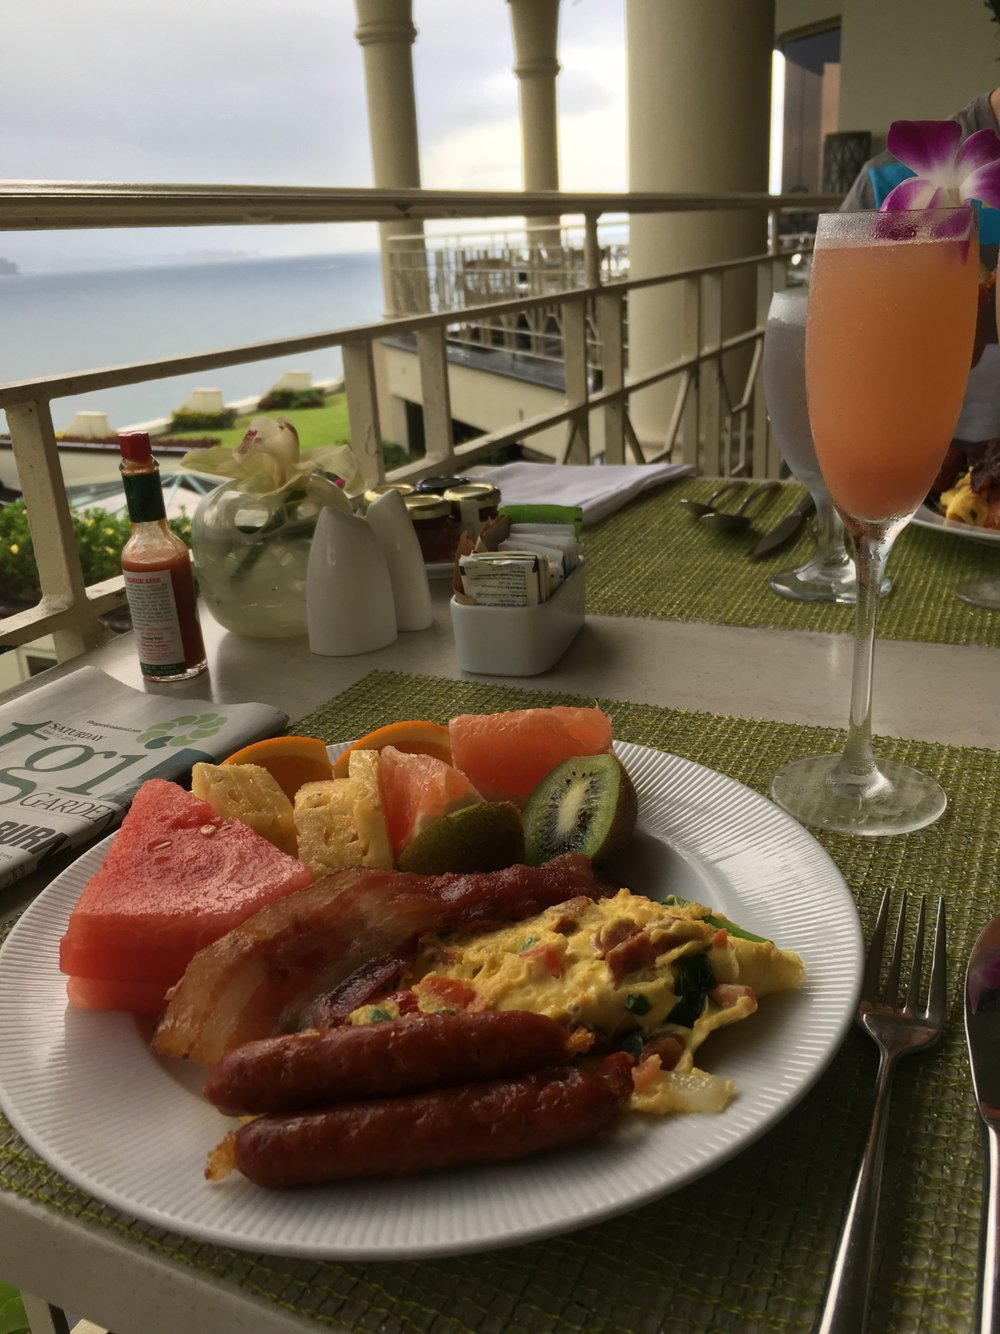 Breakfast from the buffet at Makana Terrace. Paired with a guava mimosa!